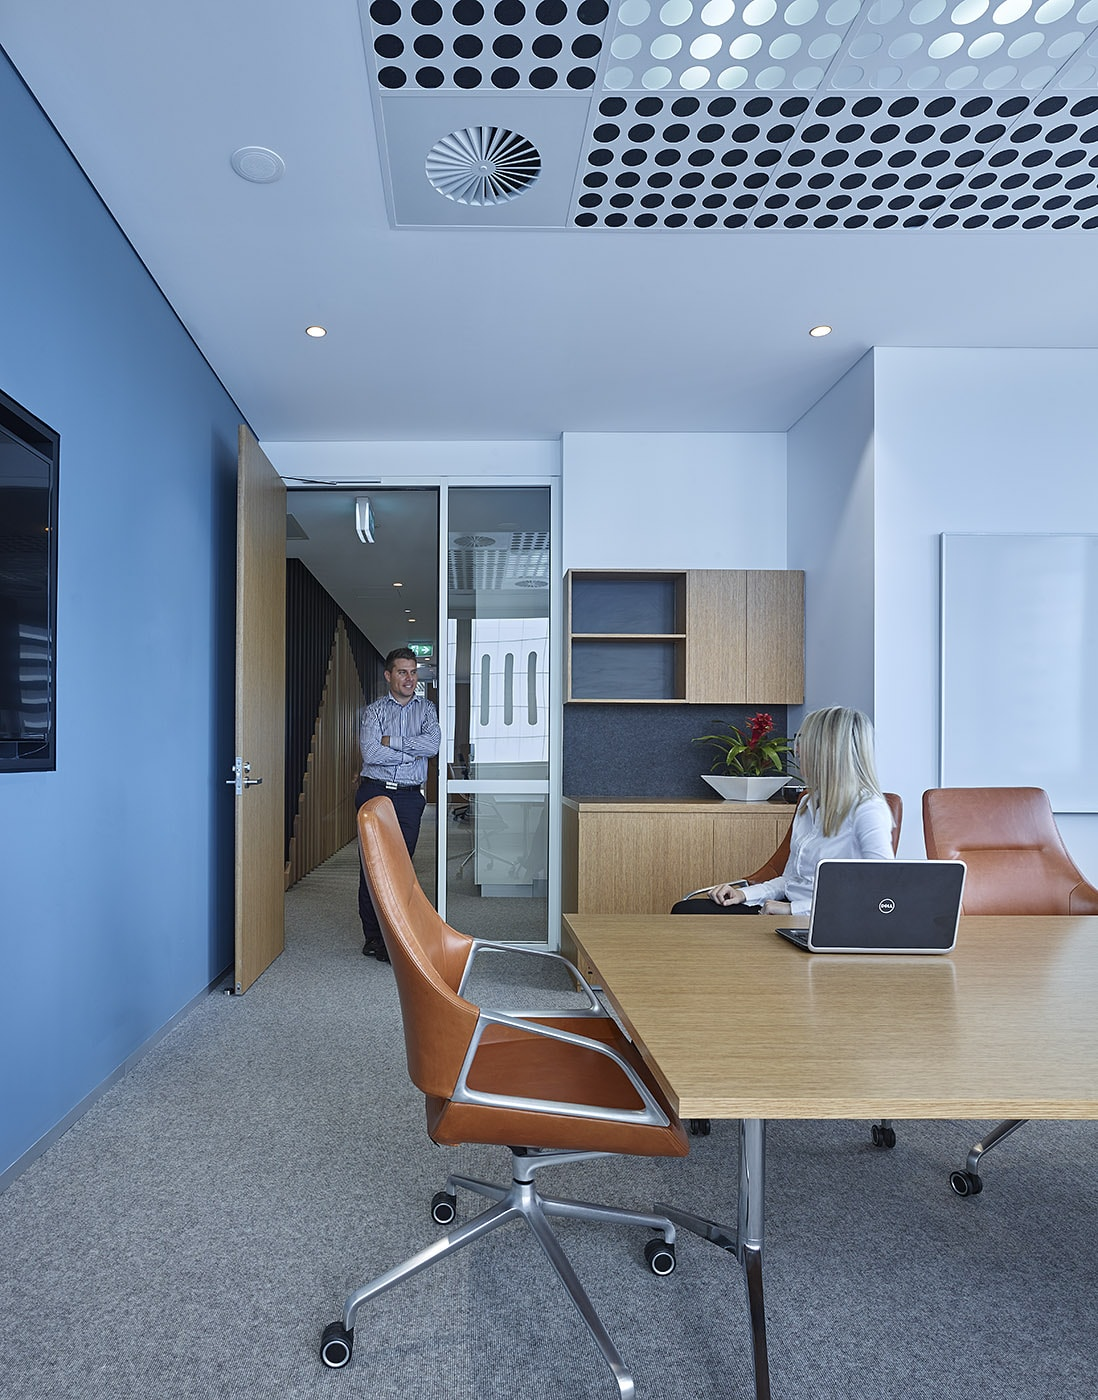 Ausure Brisbane Tenant Representation, Interior Design, Project & Construction Management Project Image 8 by PCG